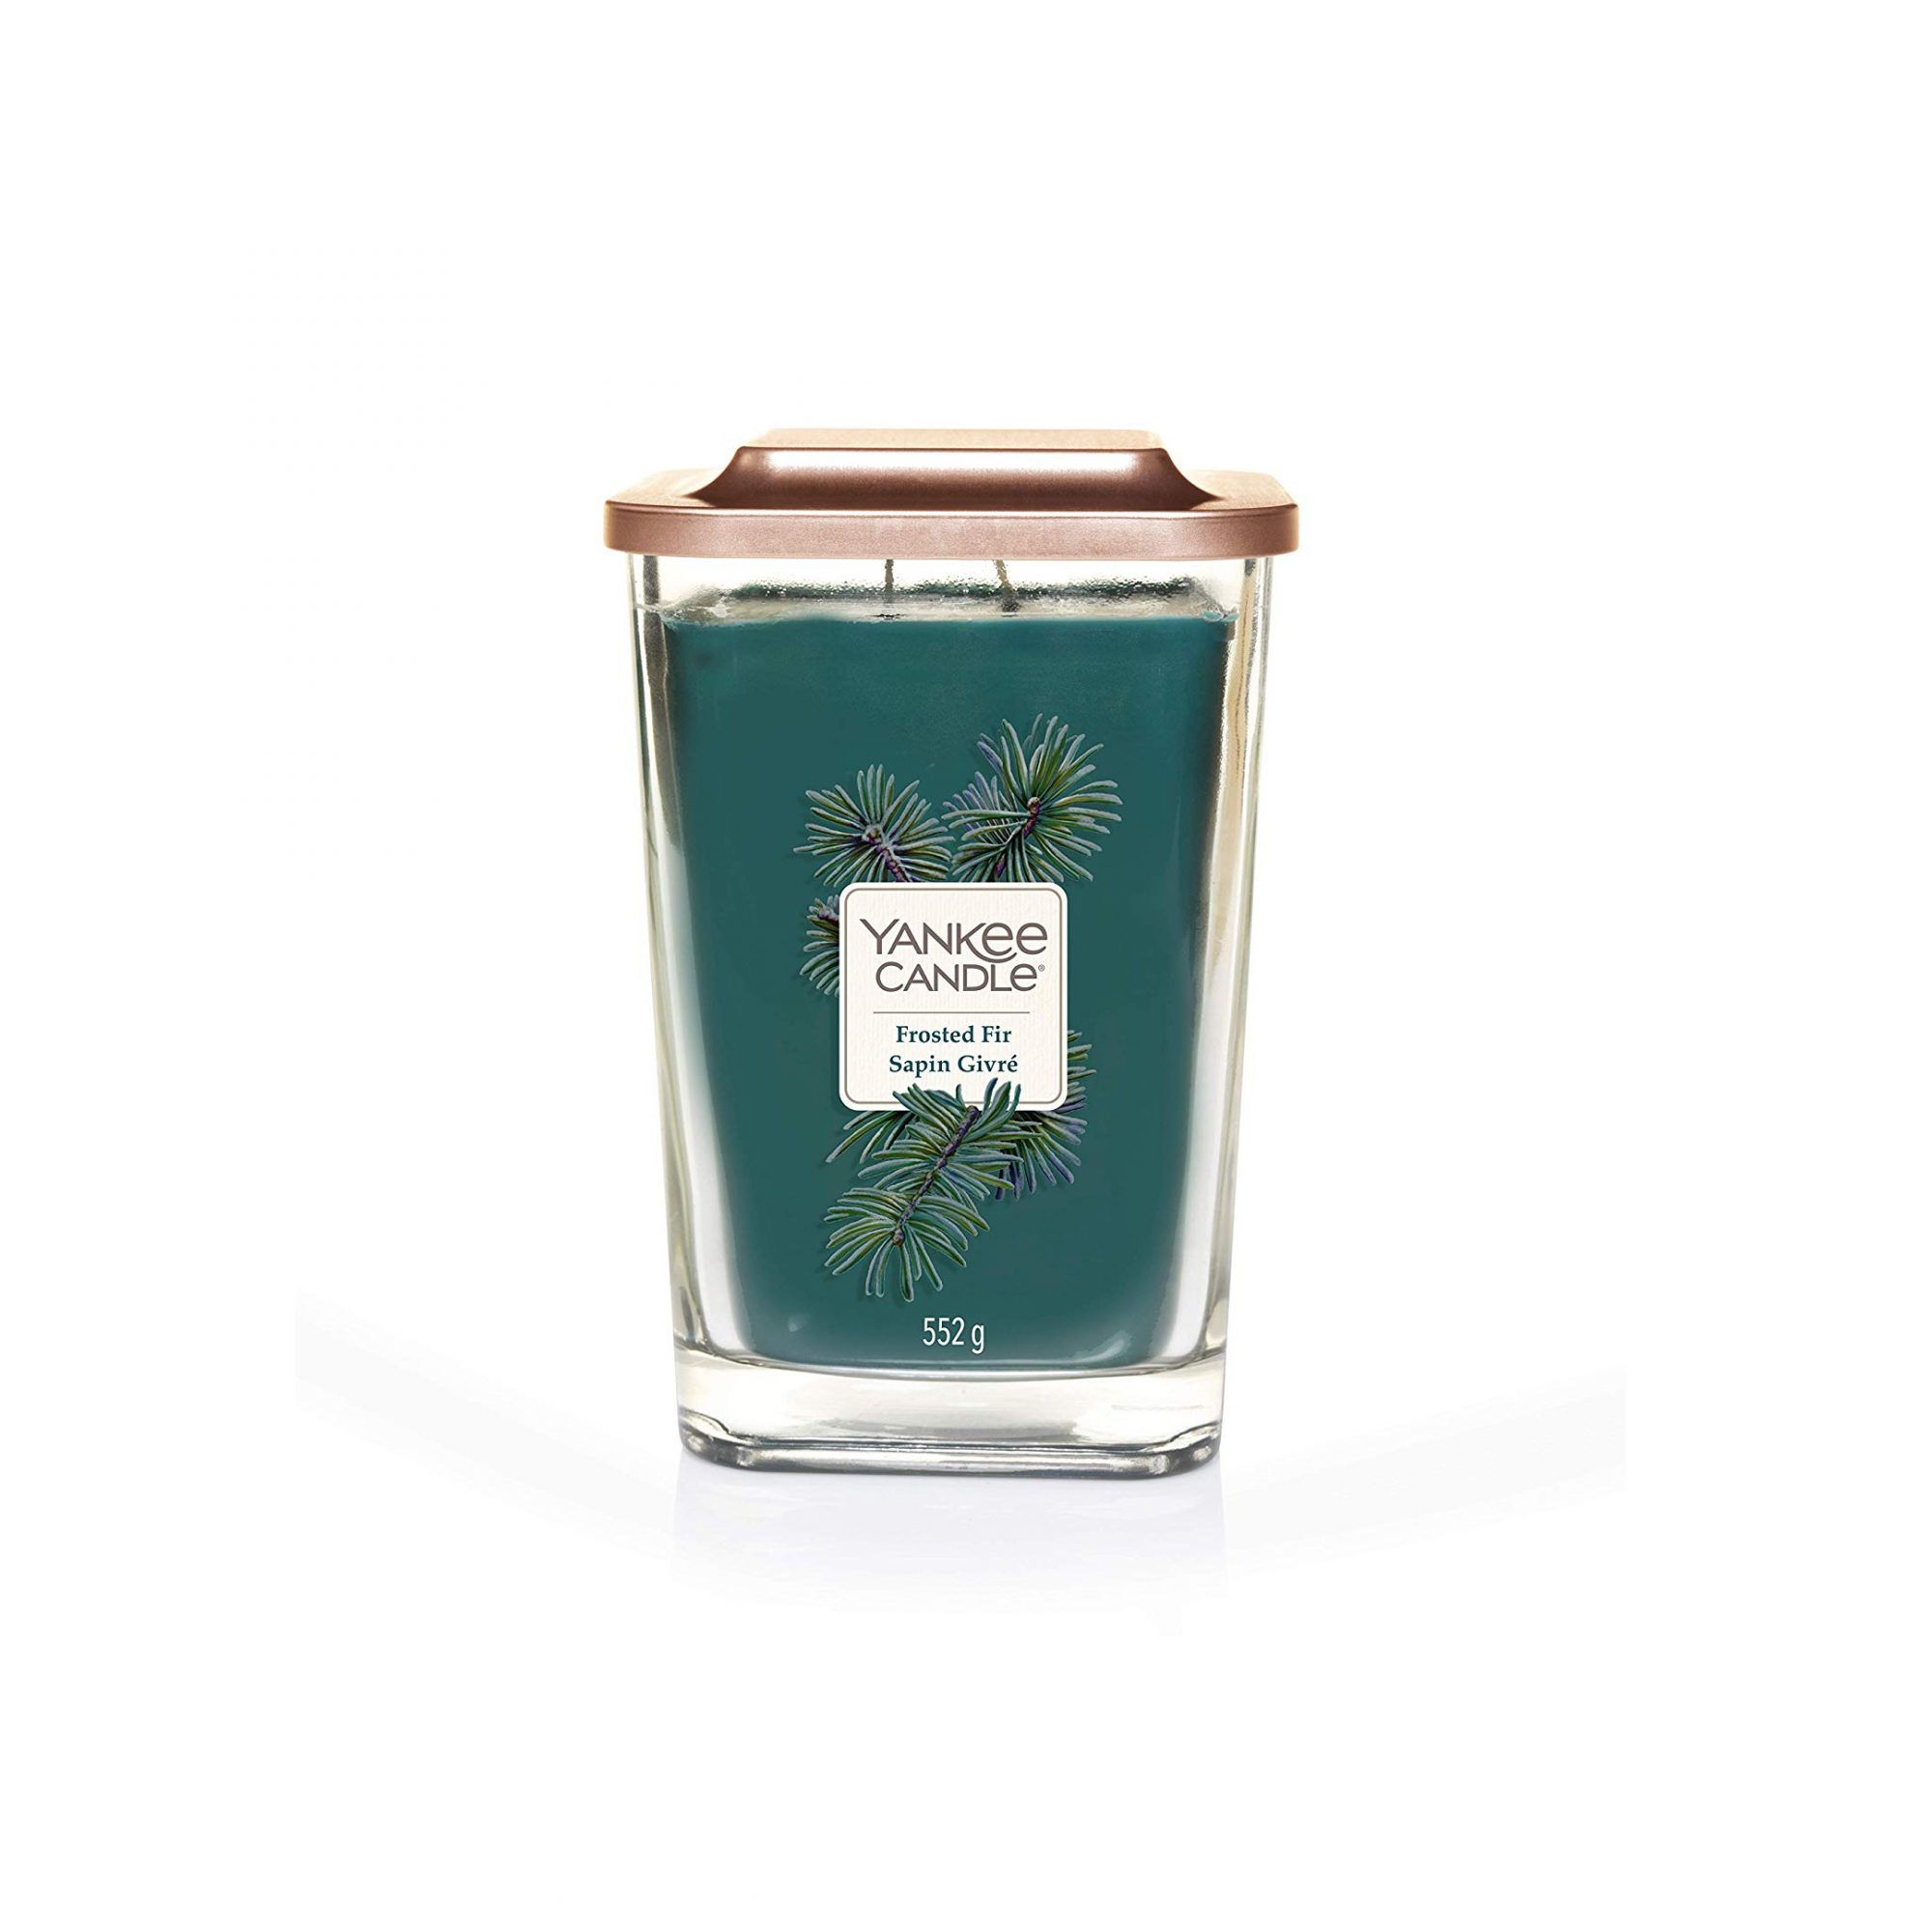 Yankee Candle Elevation Collection in Frosted Fir